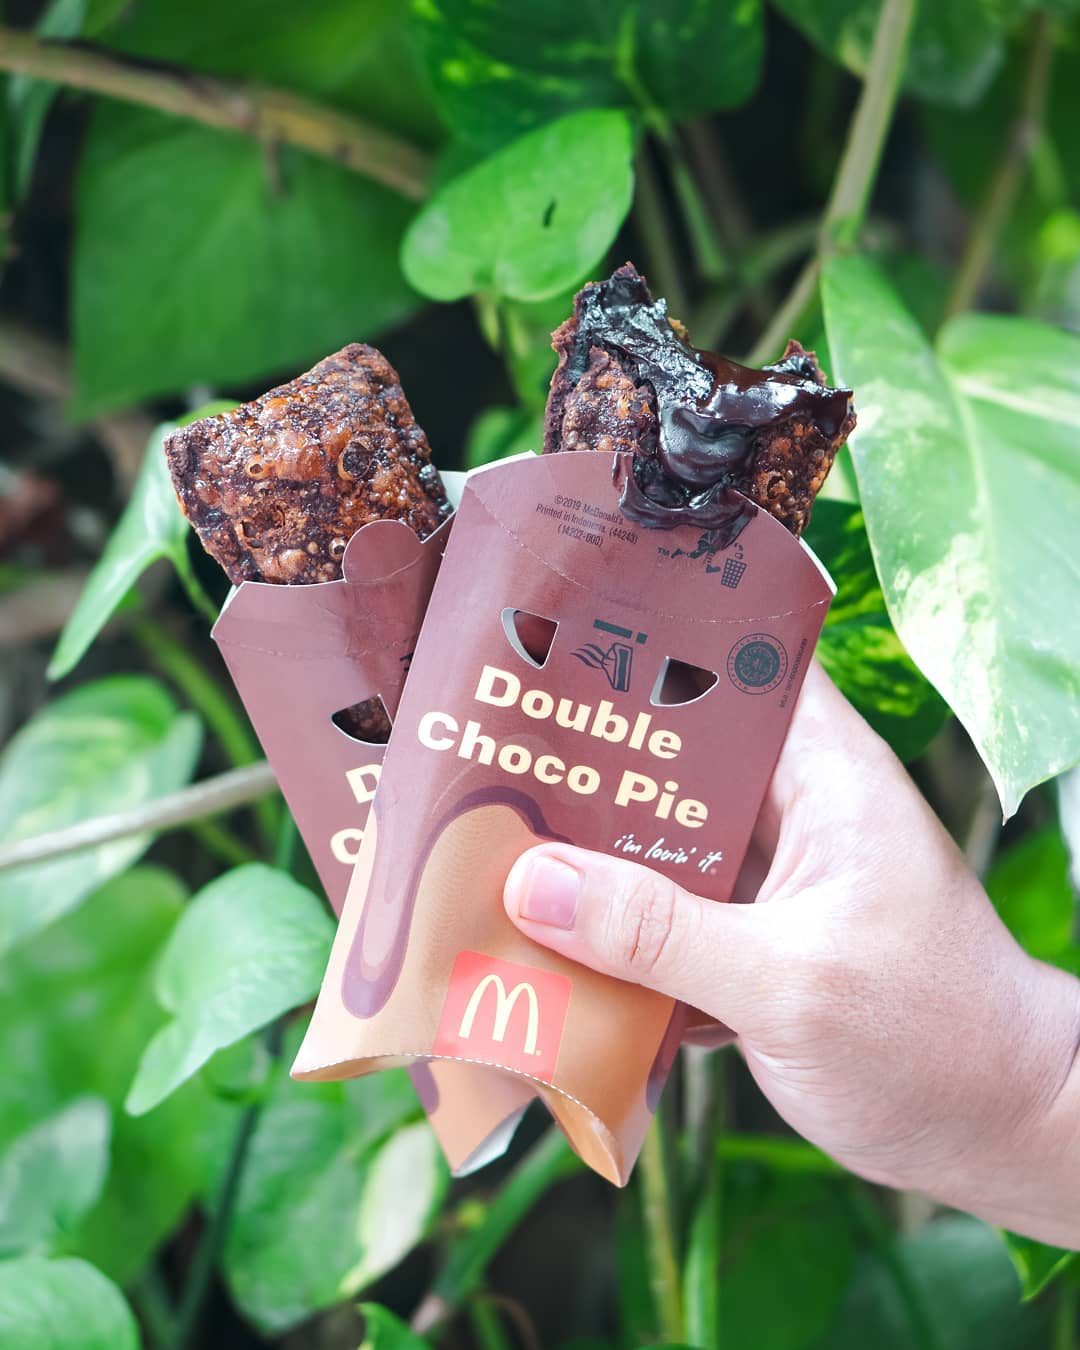 mcdonalds-double-choco-pie